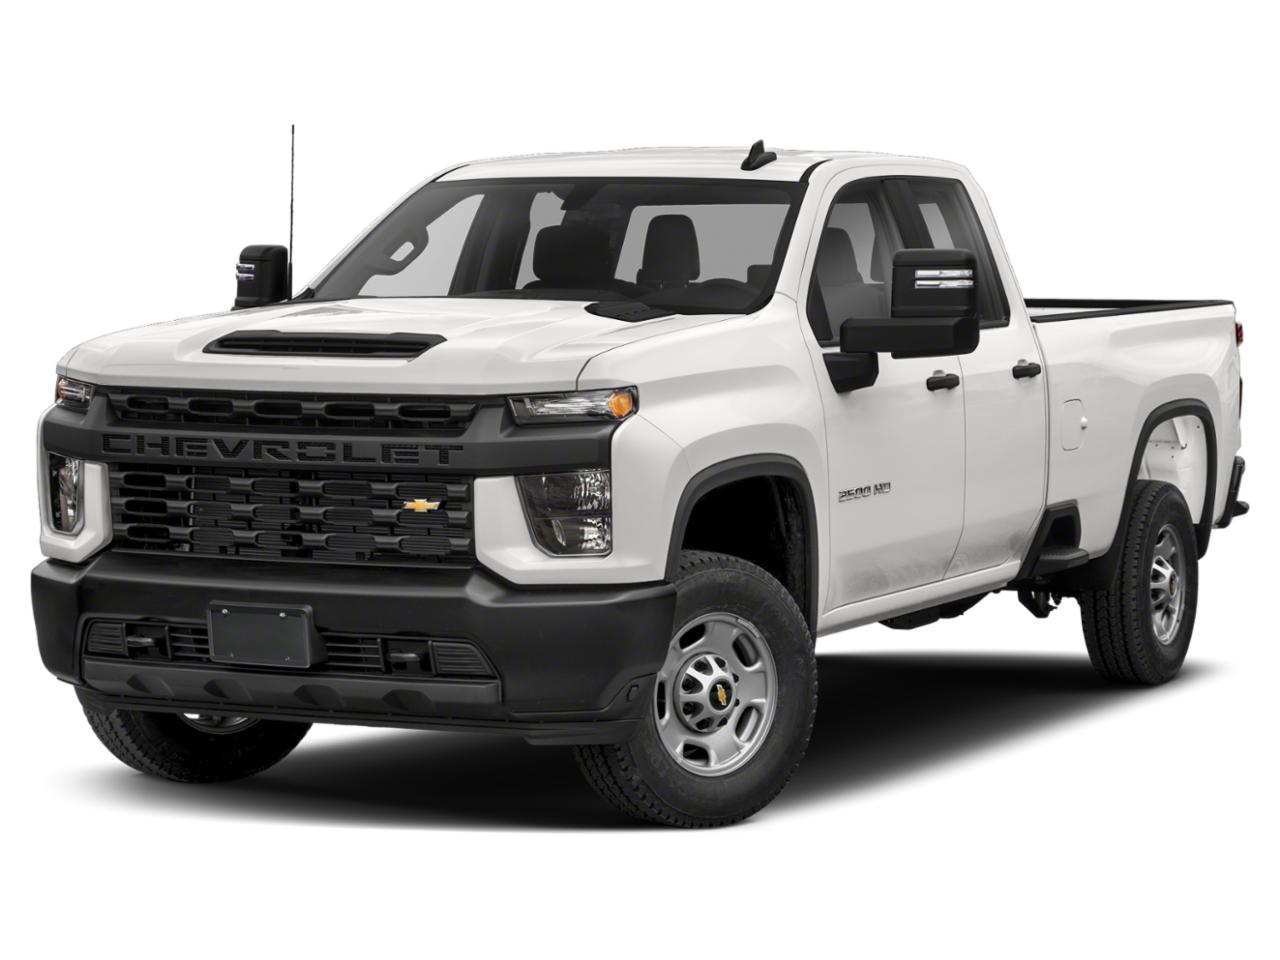 2020 Chevrolet Silverado 2500HD Vehicle Photo in Terryville, CT 06786